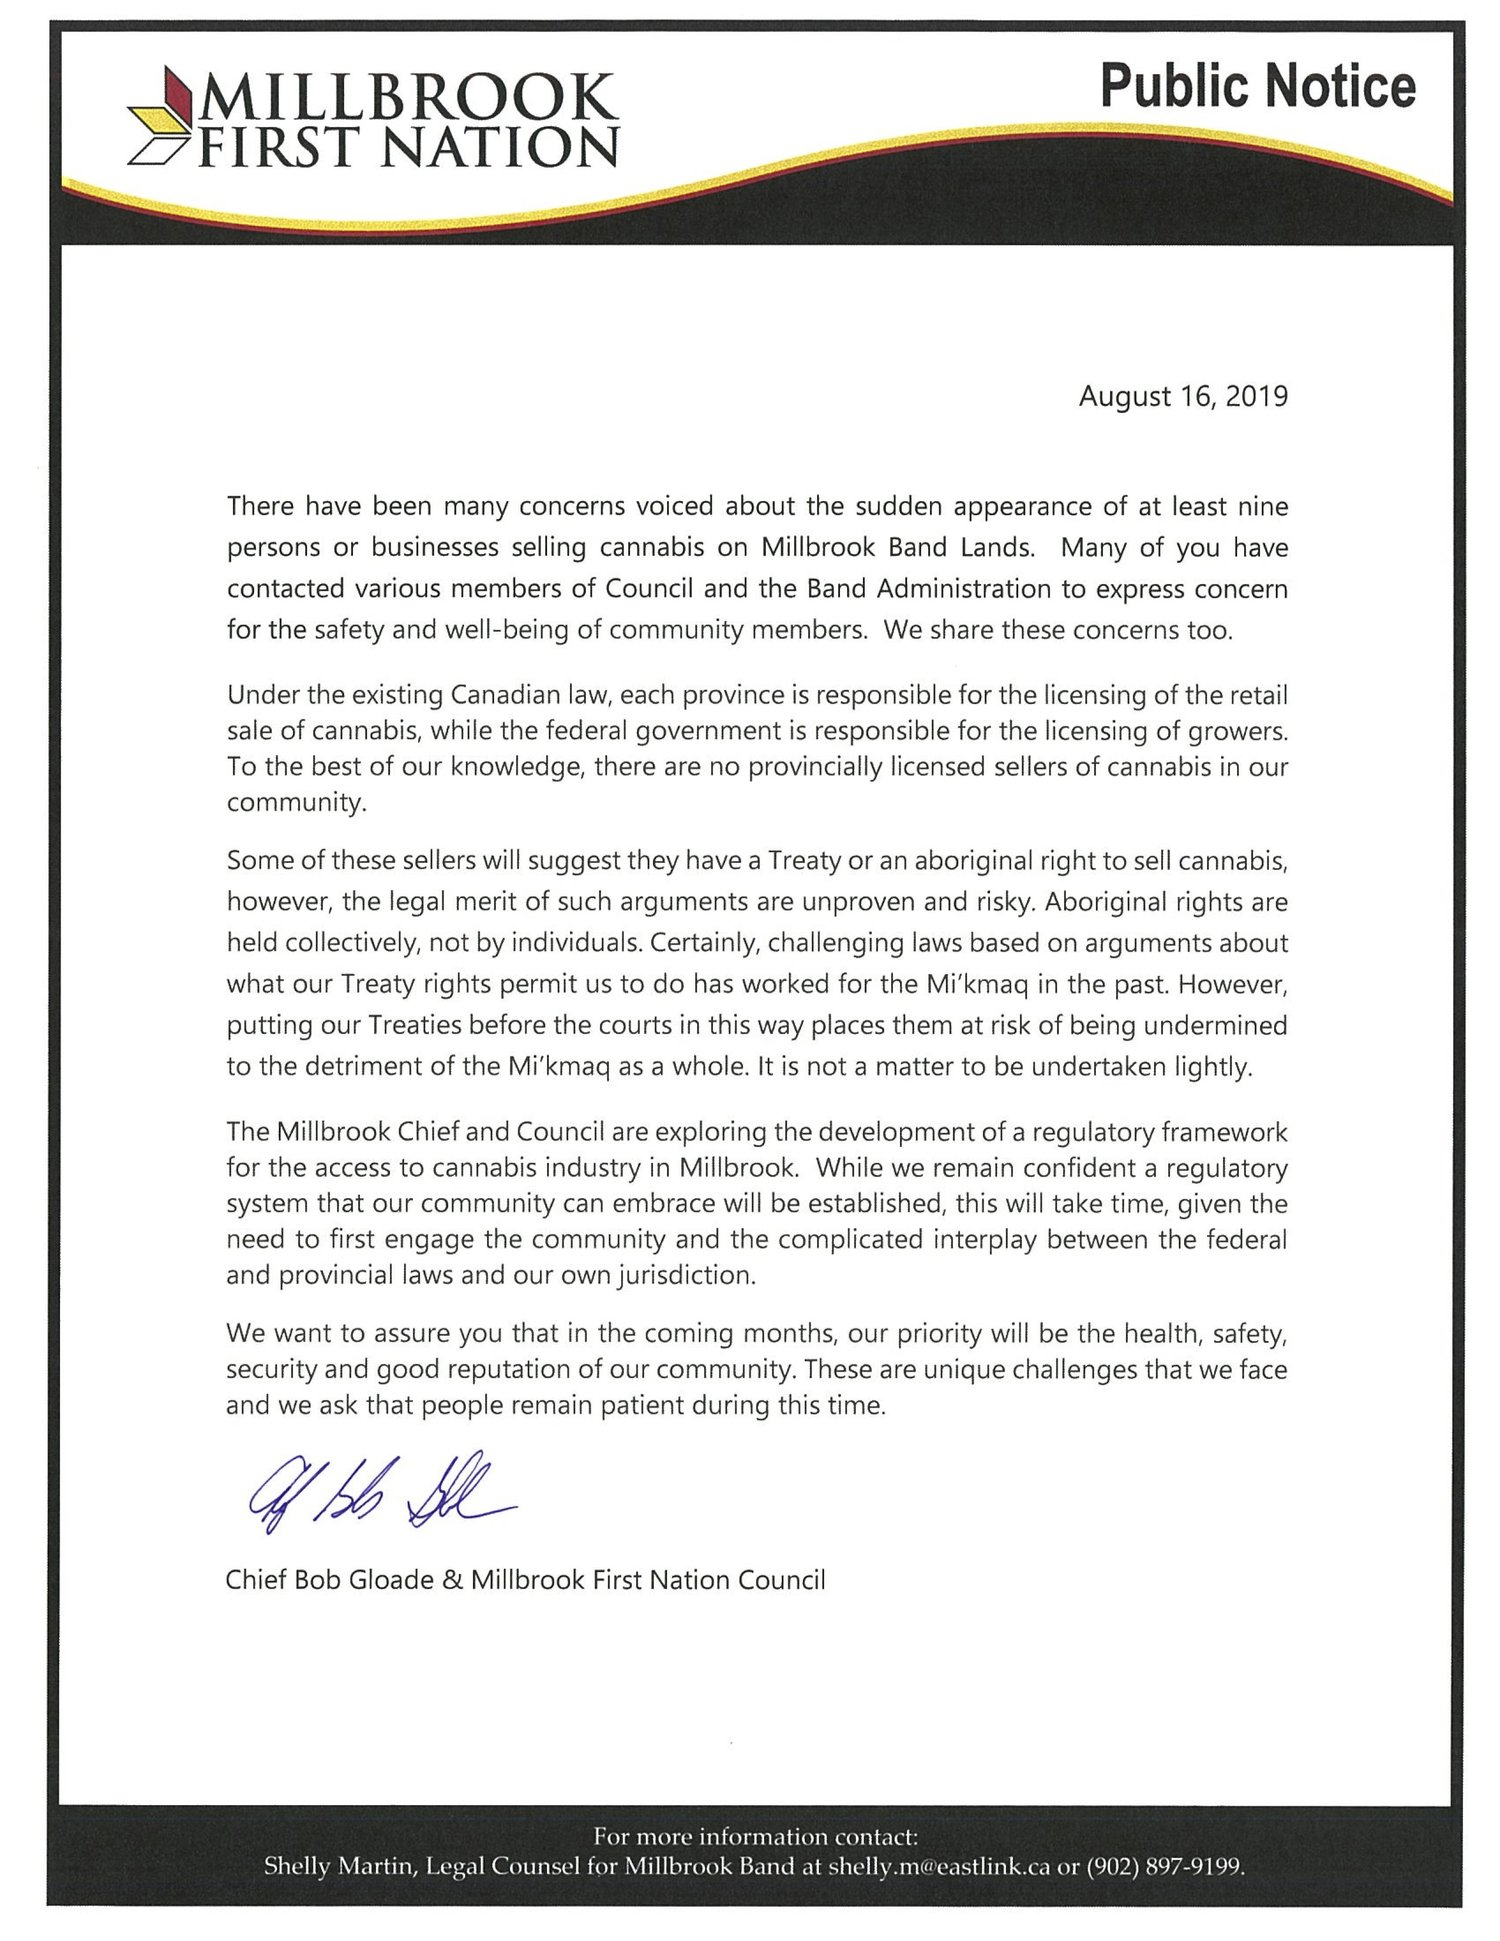 Chief and Council — News — Millbrook First Nation